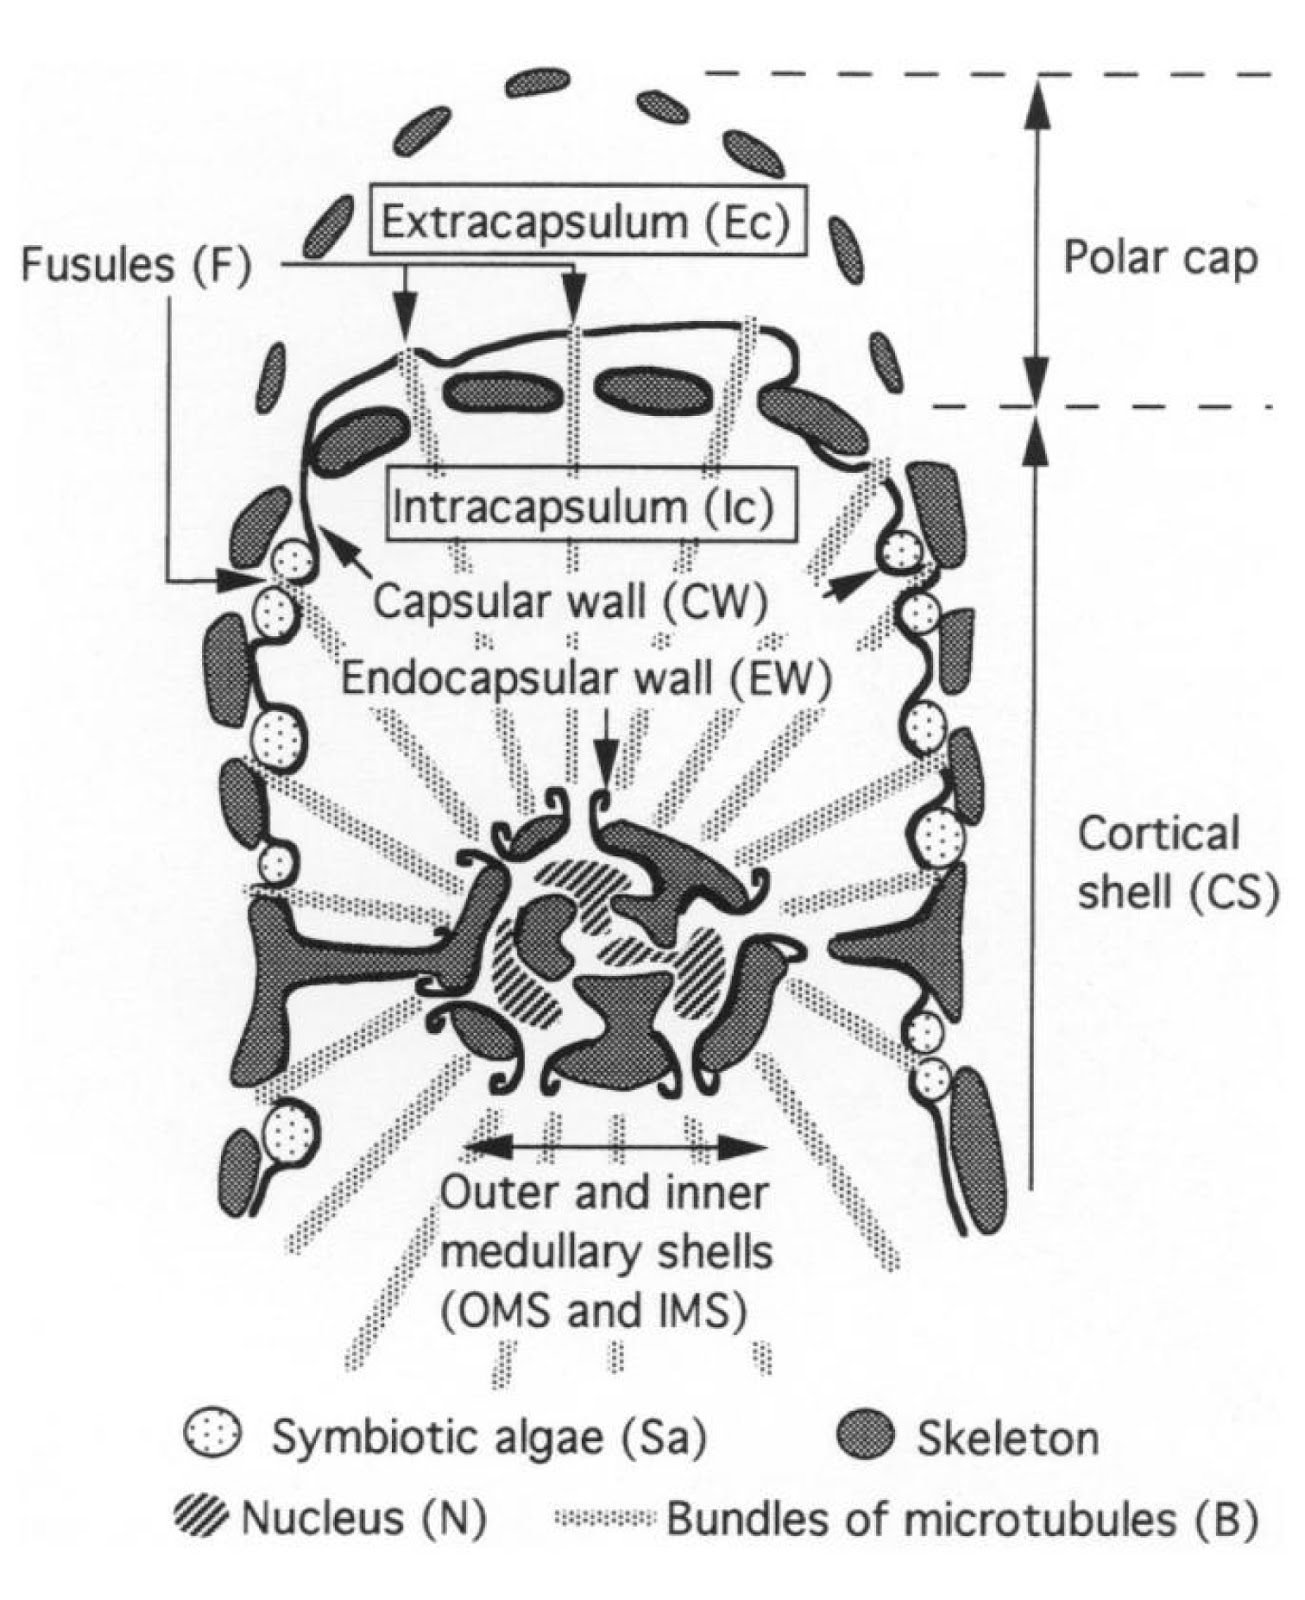 hight resolution of extension and contraction of the axopodia may also help maintain the radiolarian s position in the water column cachon et al 1990